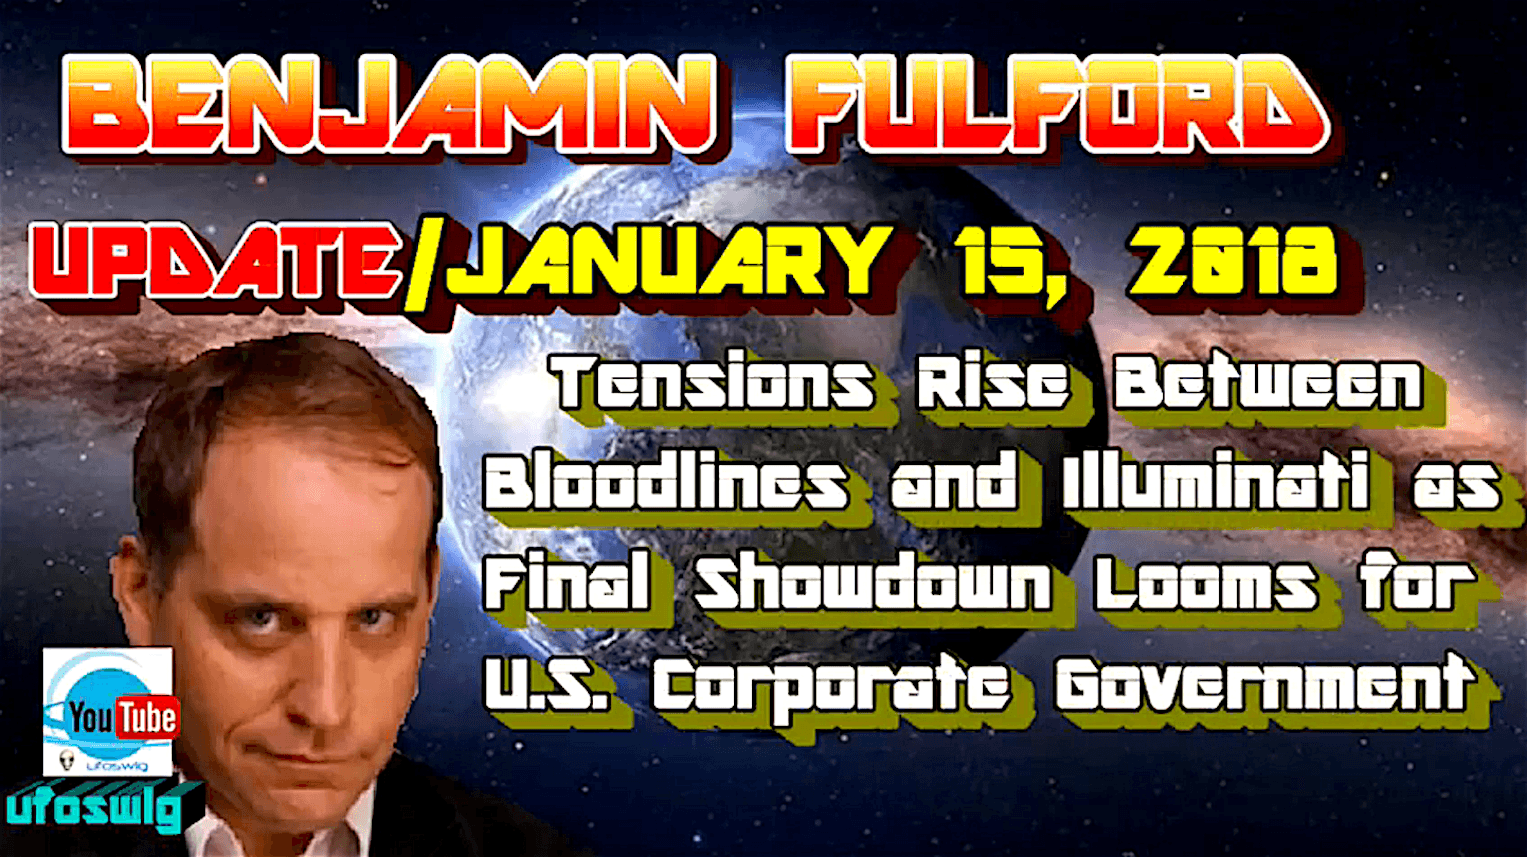 Benjamin Fulford Update (foto YouTube)